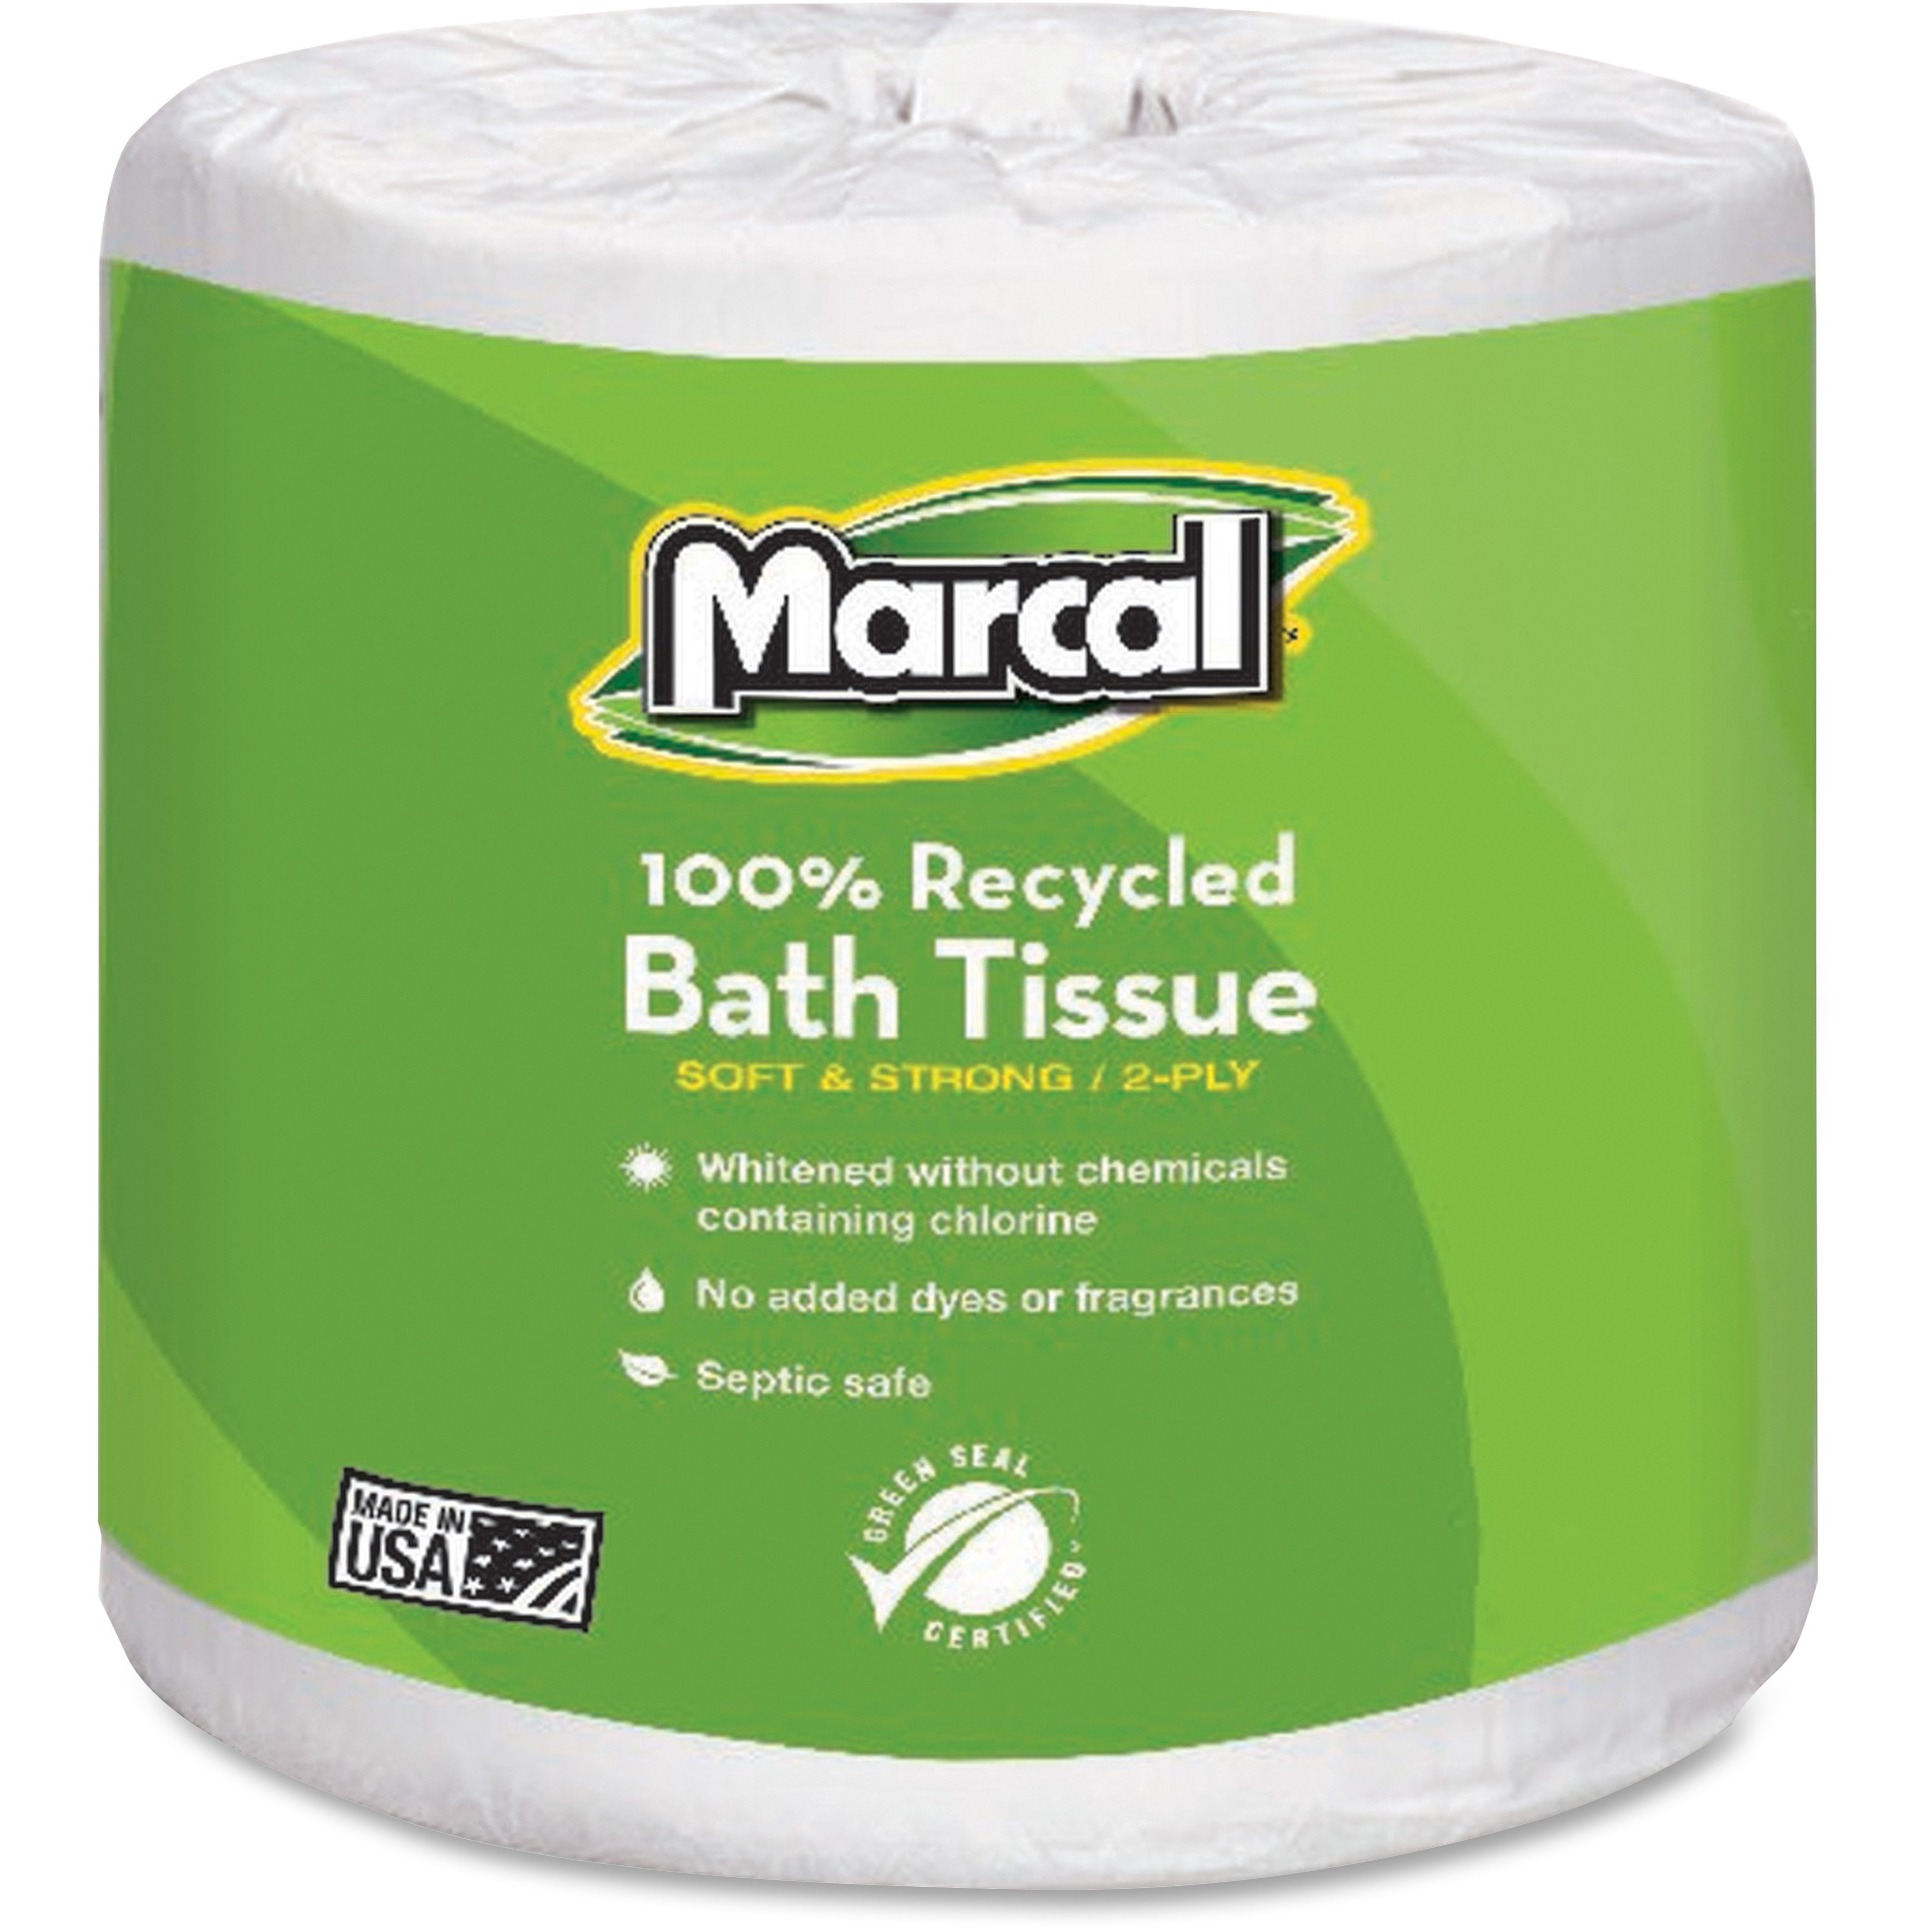 Marcal Recycled 2-ply Bath Tissue